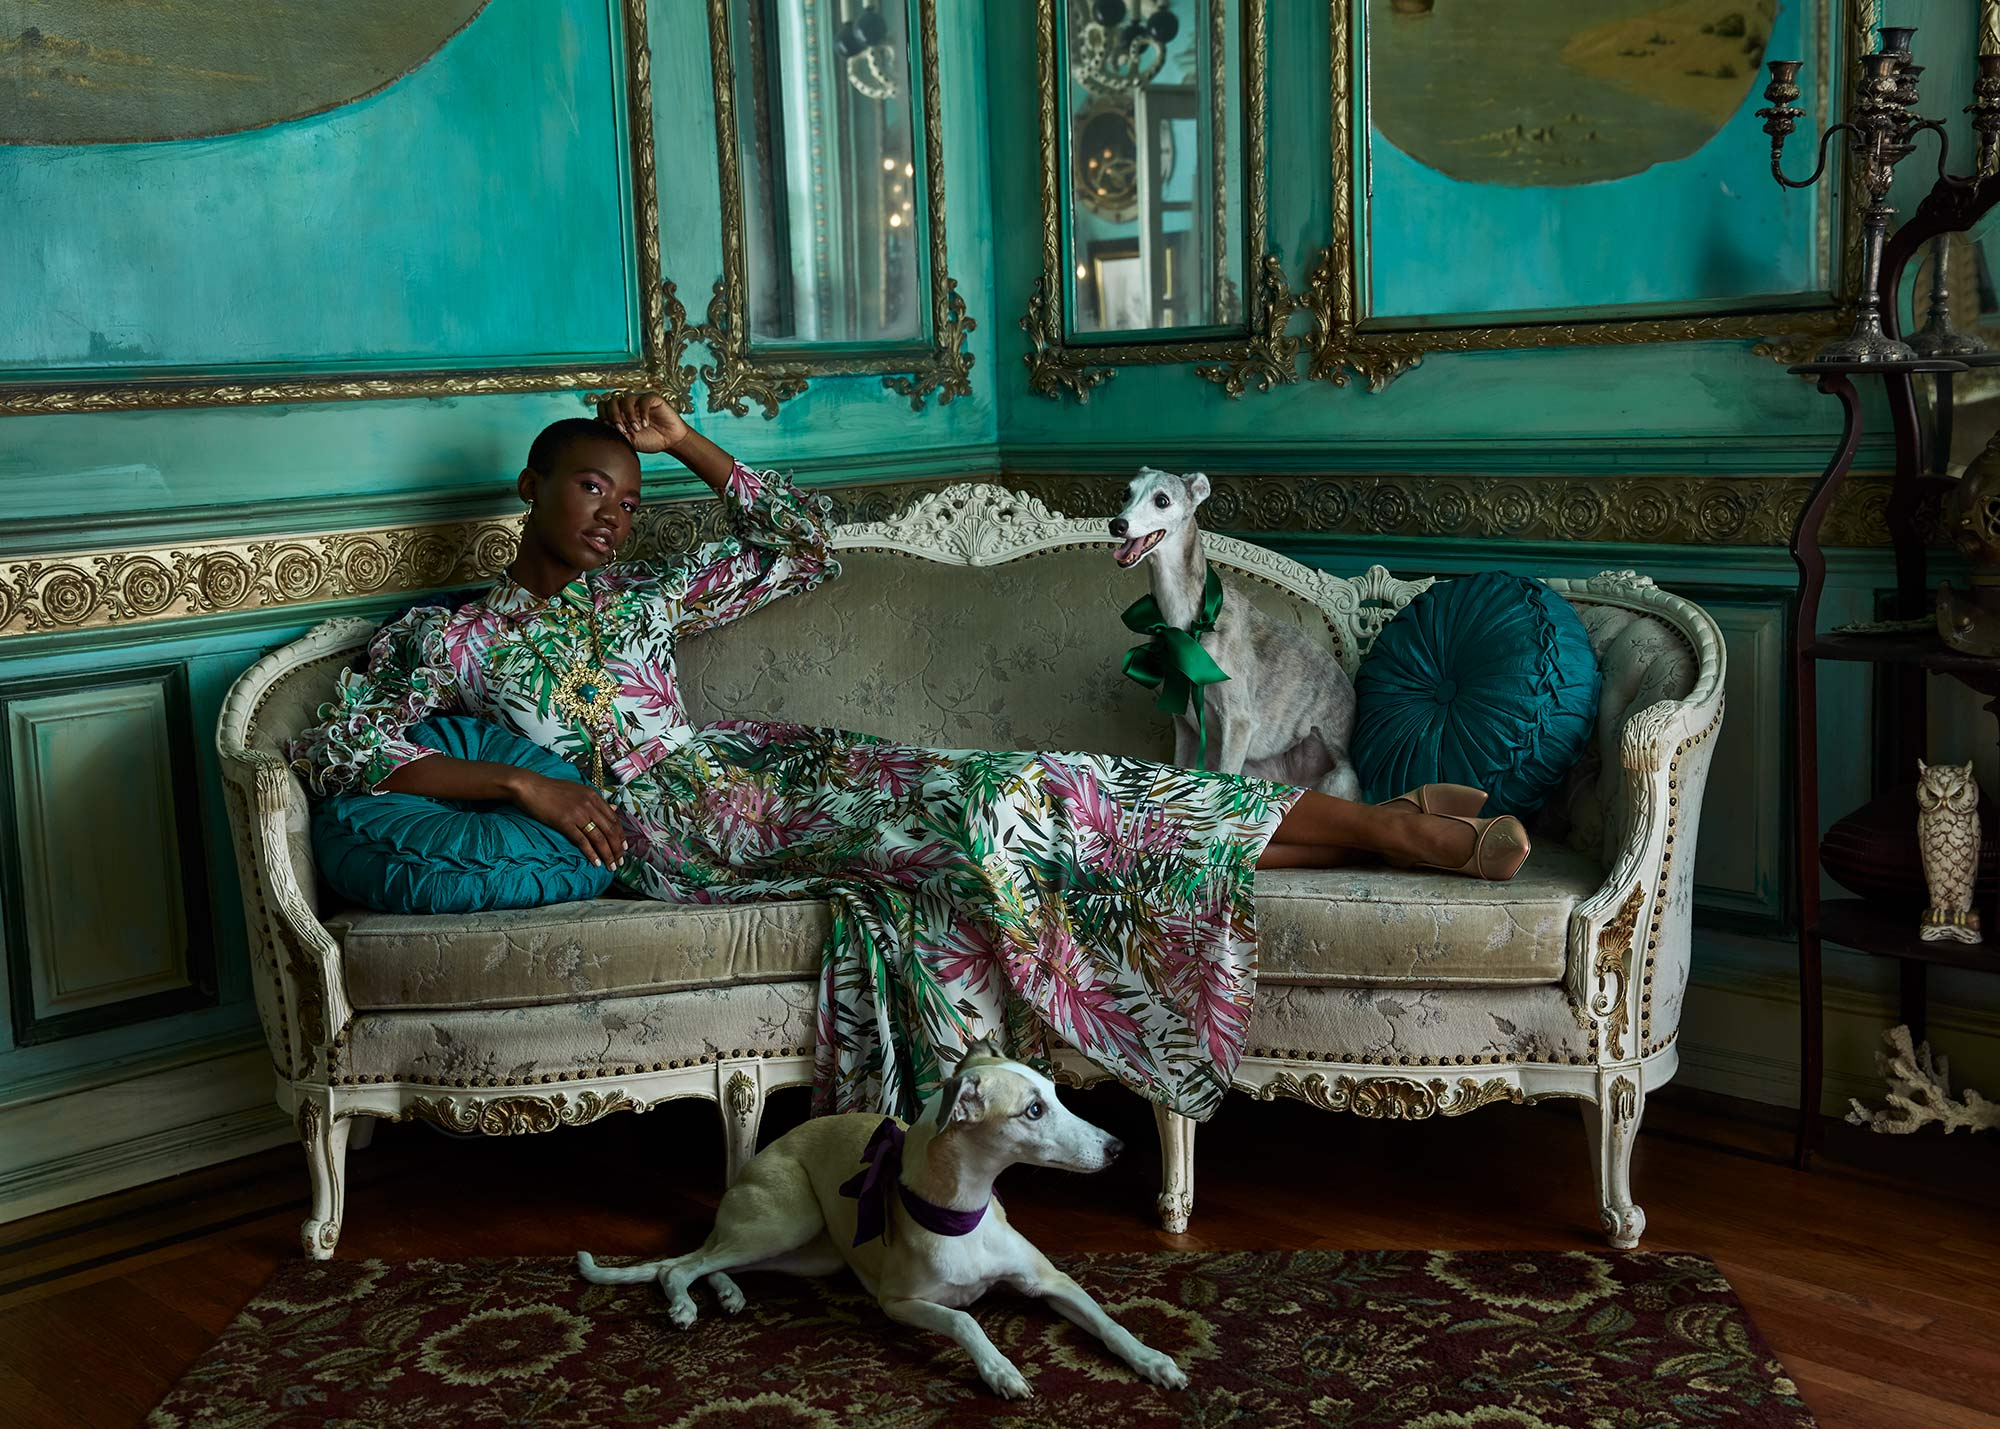 Fashion photograph of a model lounging on a couch with two dogs